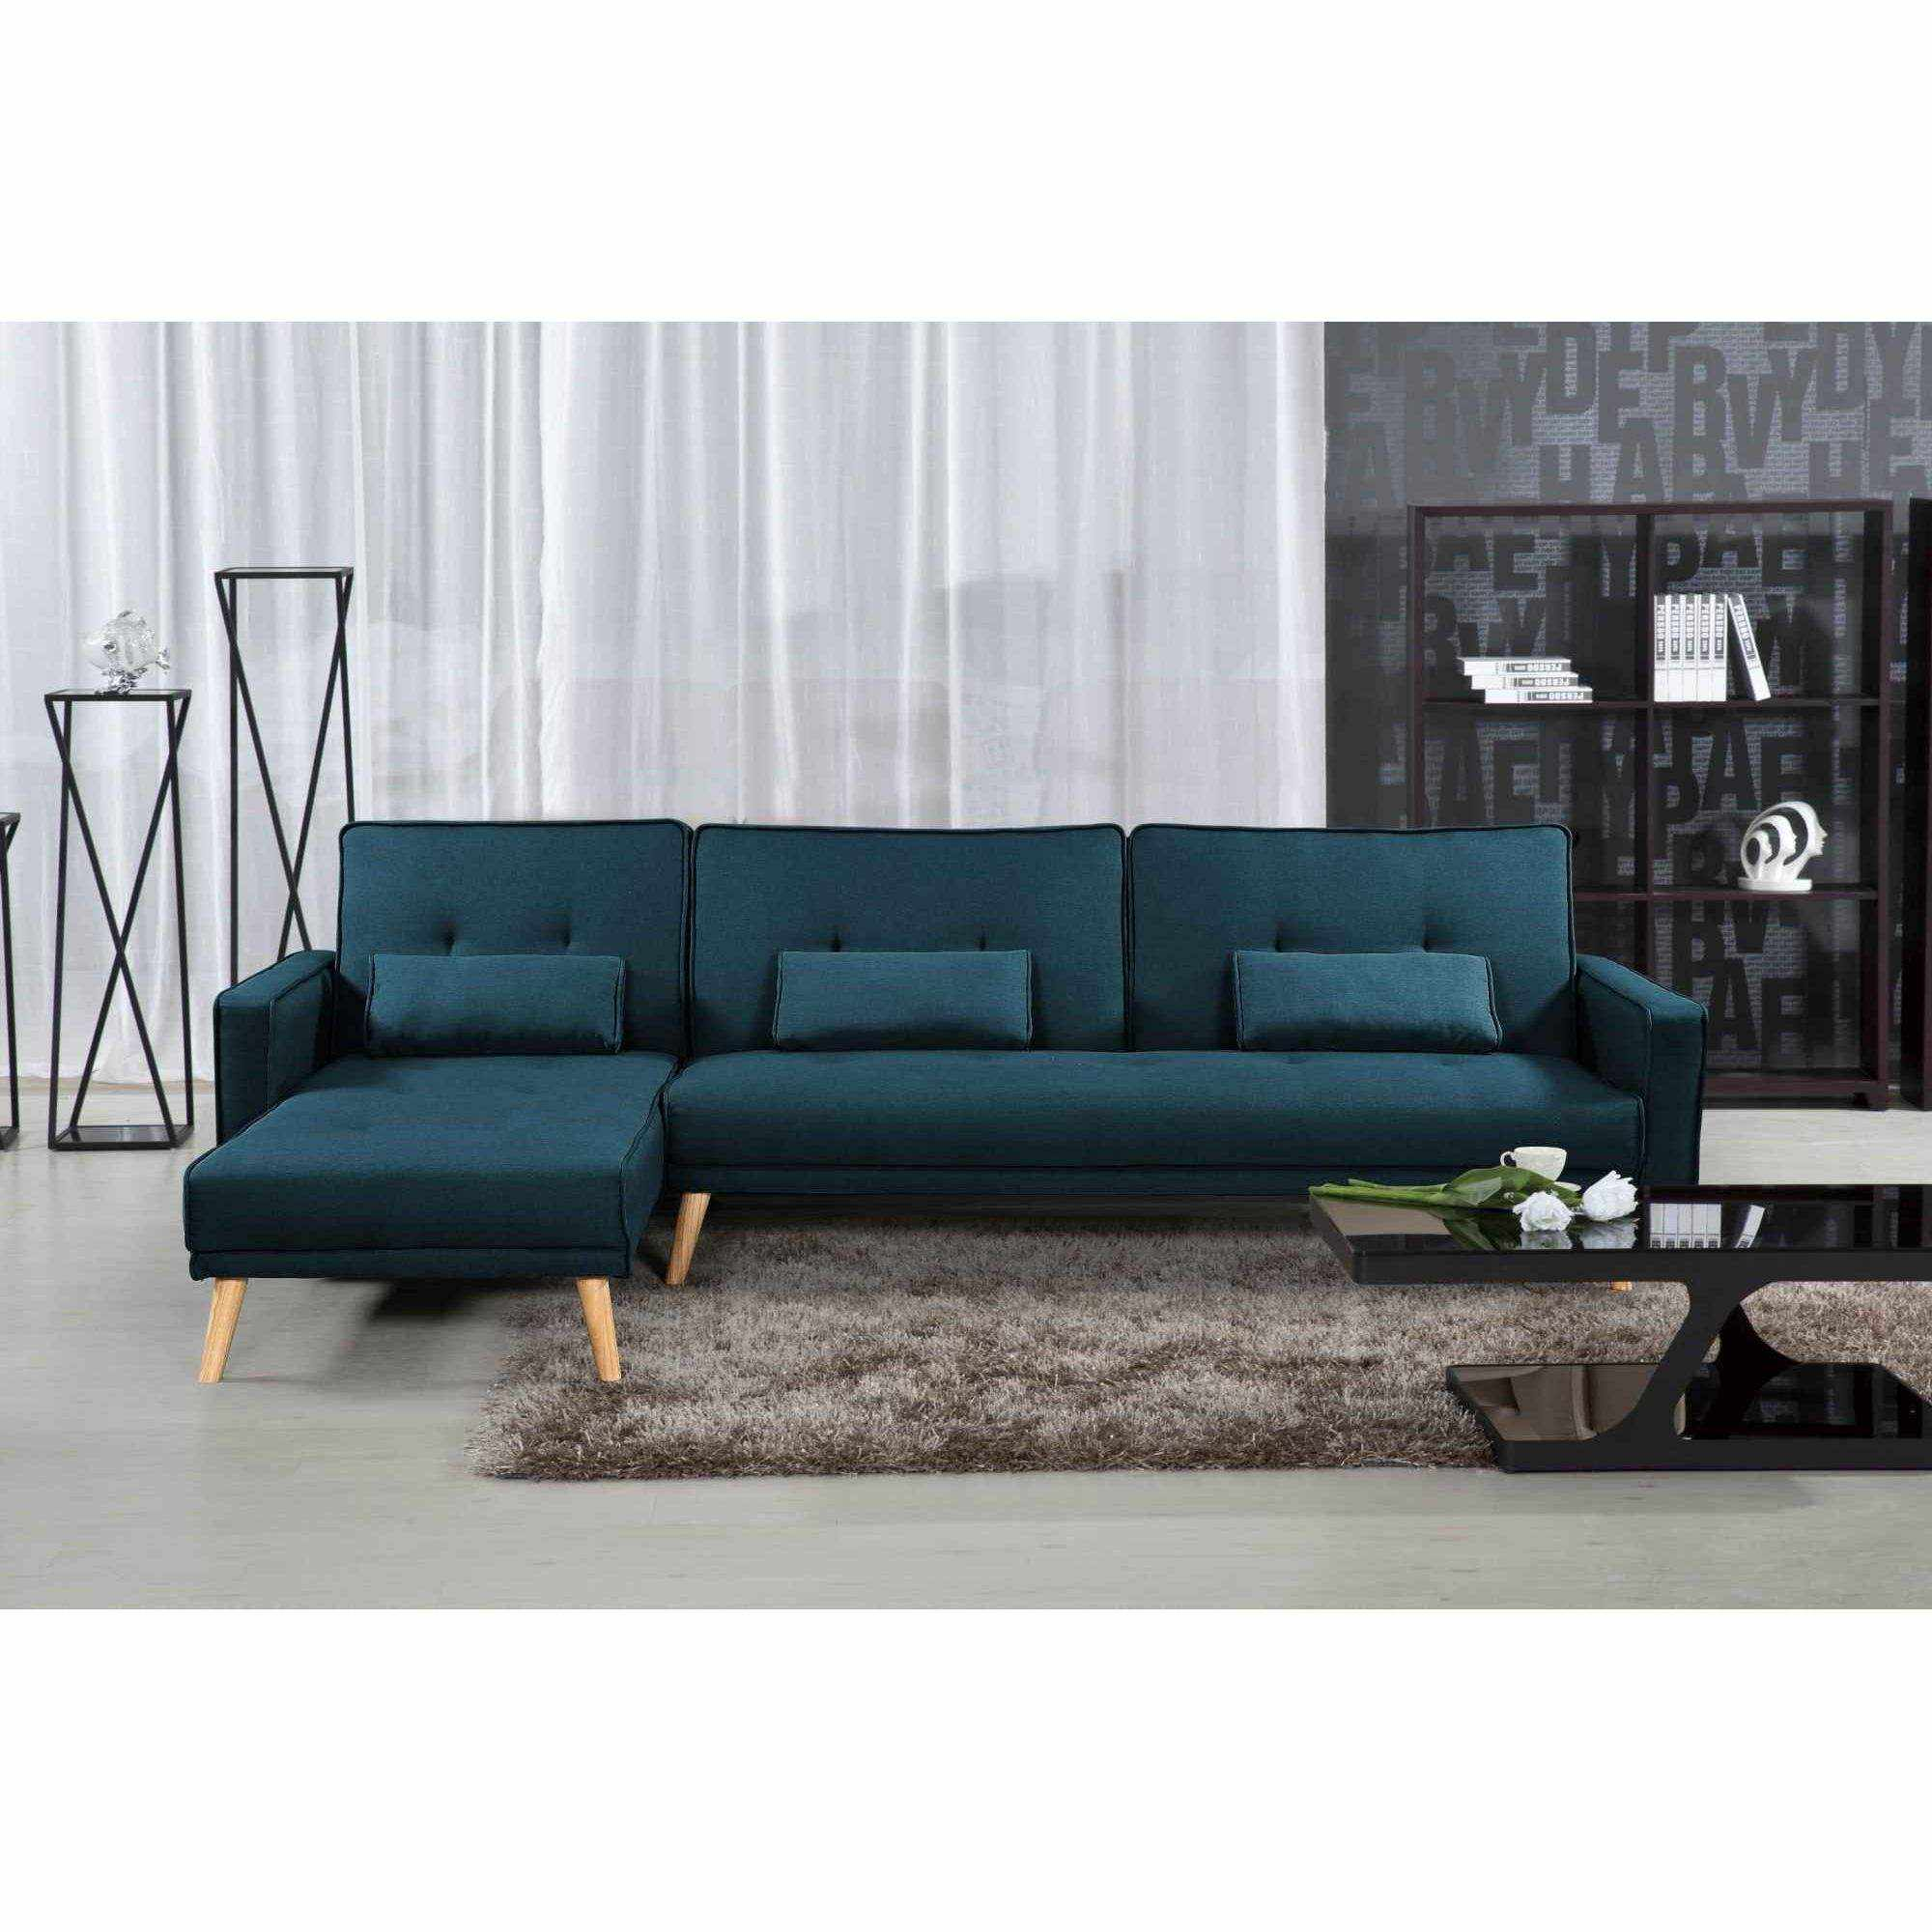 deco in paris 6 canape d angle convertible modulable en tissu bleu canard clea angle gauche. Black Bedroom Furniture Sets. Home Design Ideas